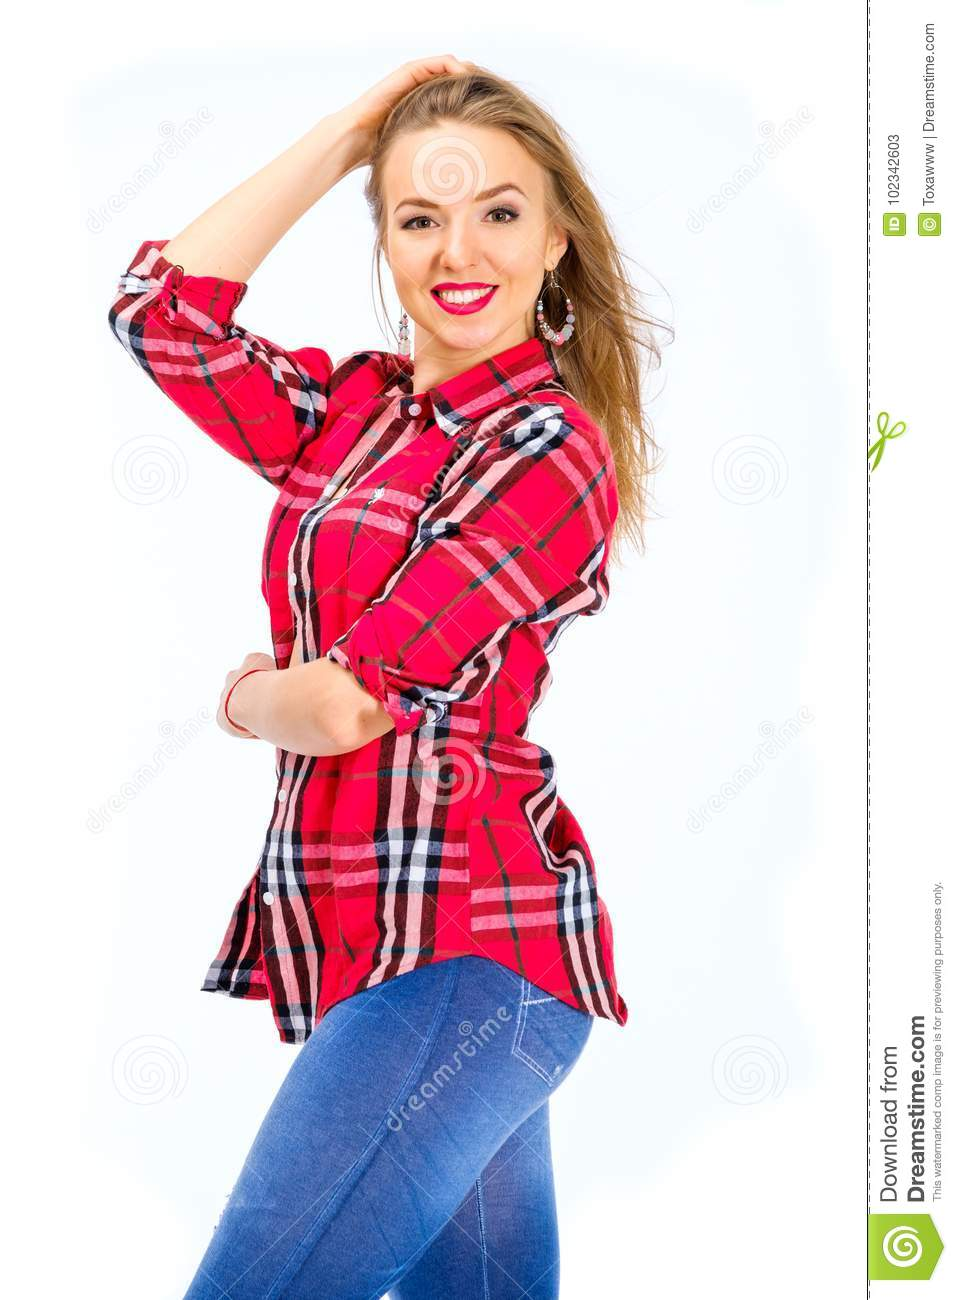 8509990a5a8 Young woman dressed in jeans and checkered shirt posing in studio isolated  on white. More similar stock images